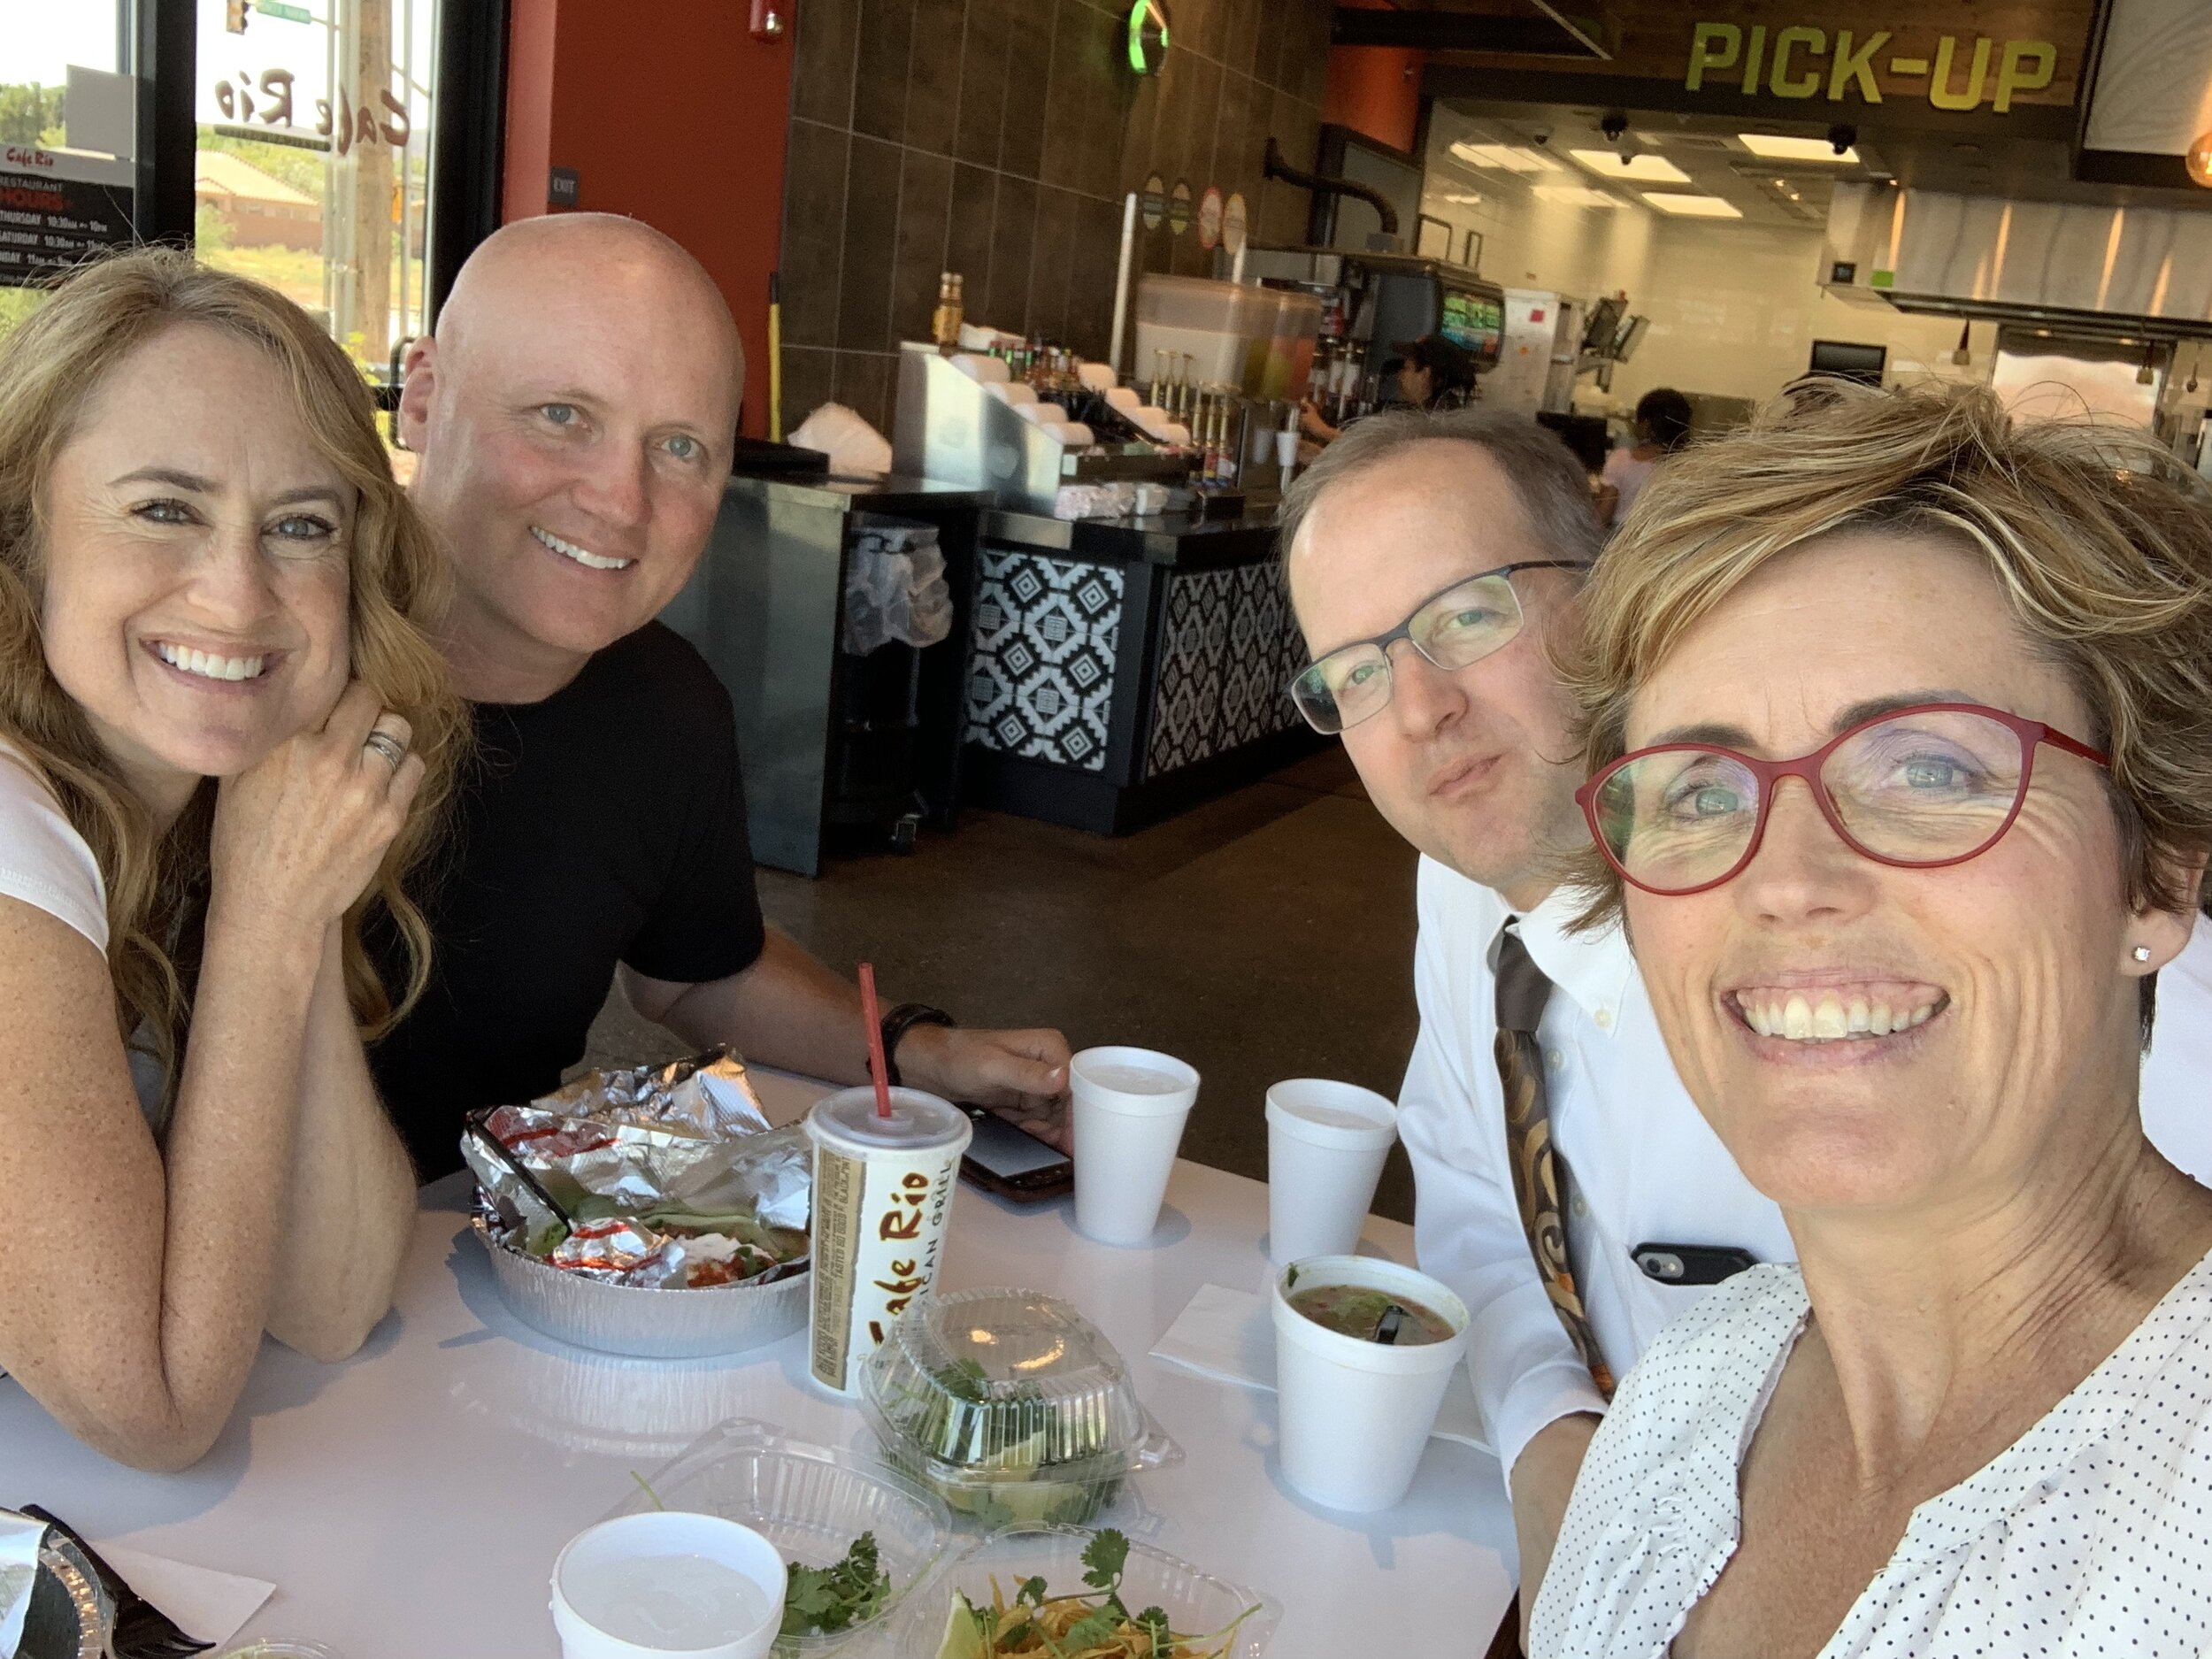 I can't believe I forgot to take a photo of us during our recording session—go figure?! This photo was taken just after—at Cafe Rio. Good times!